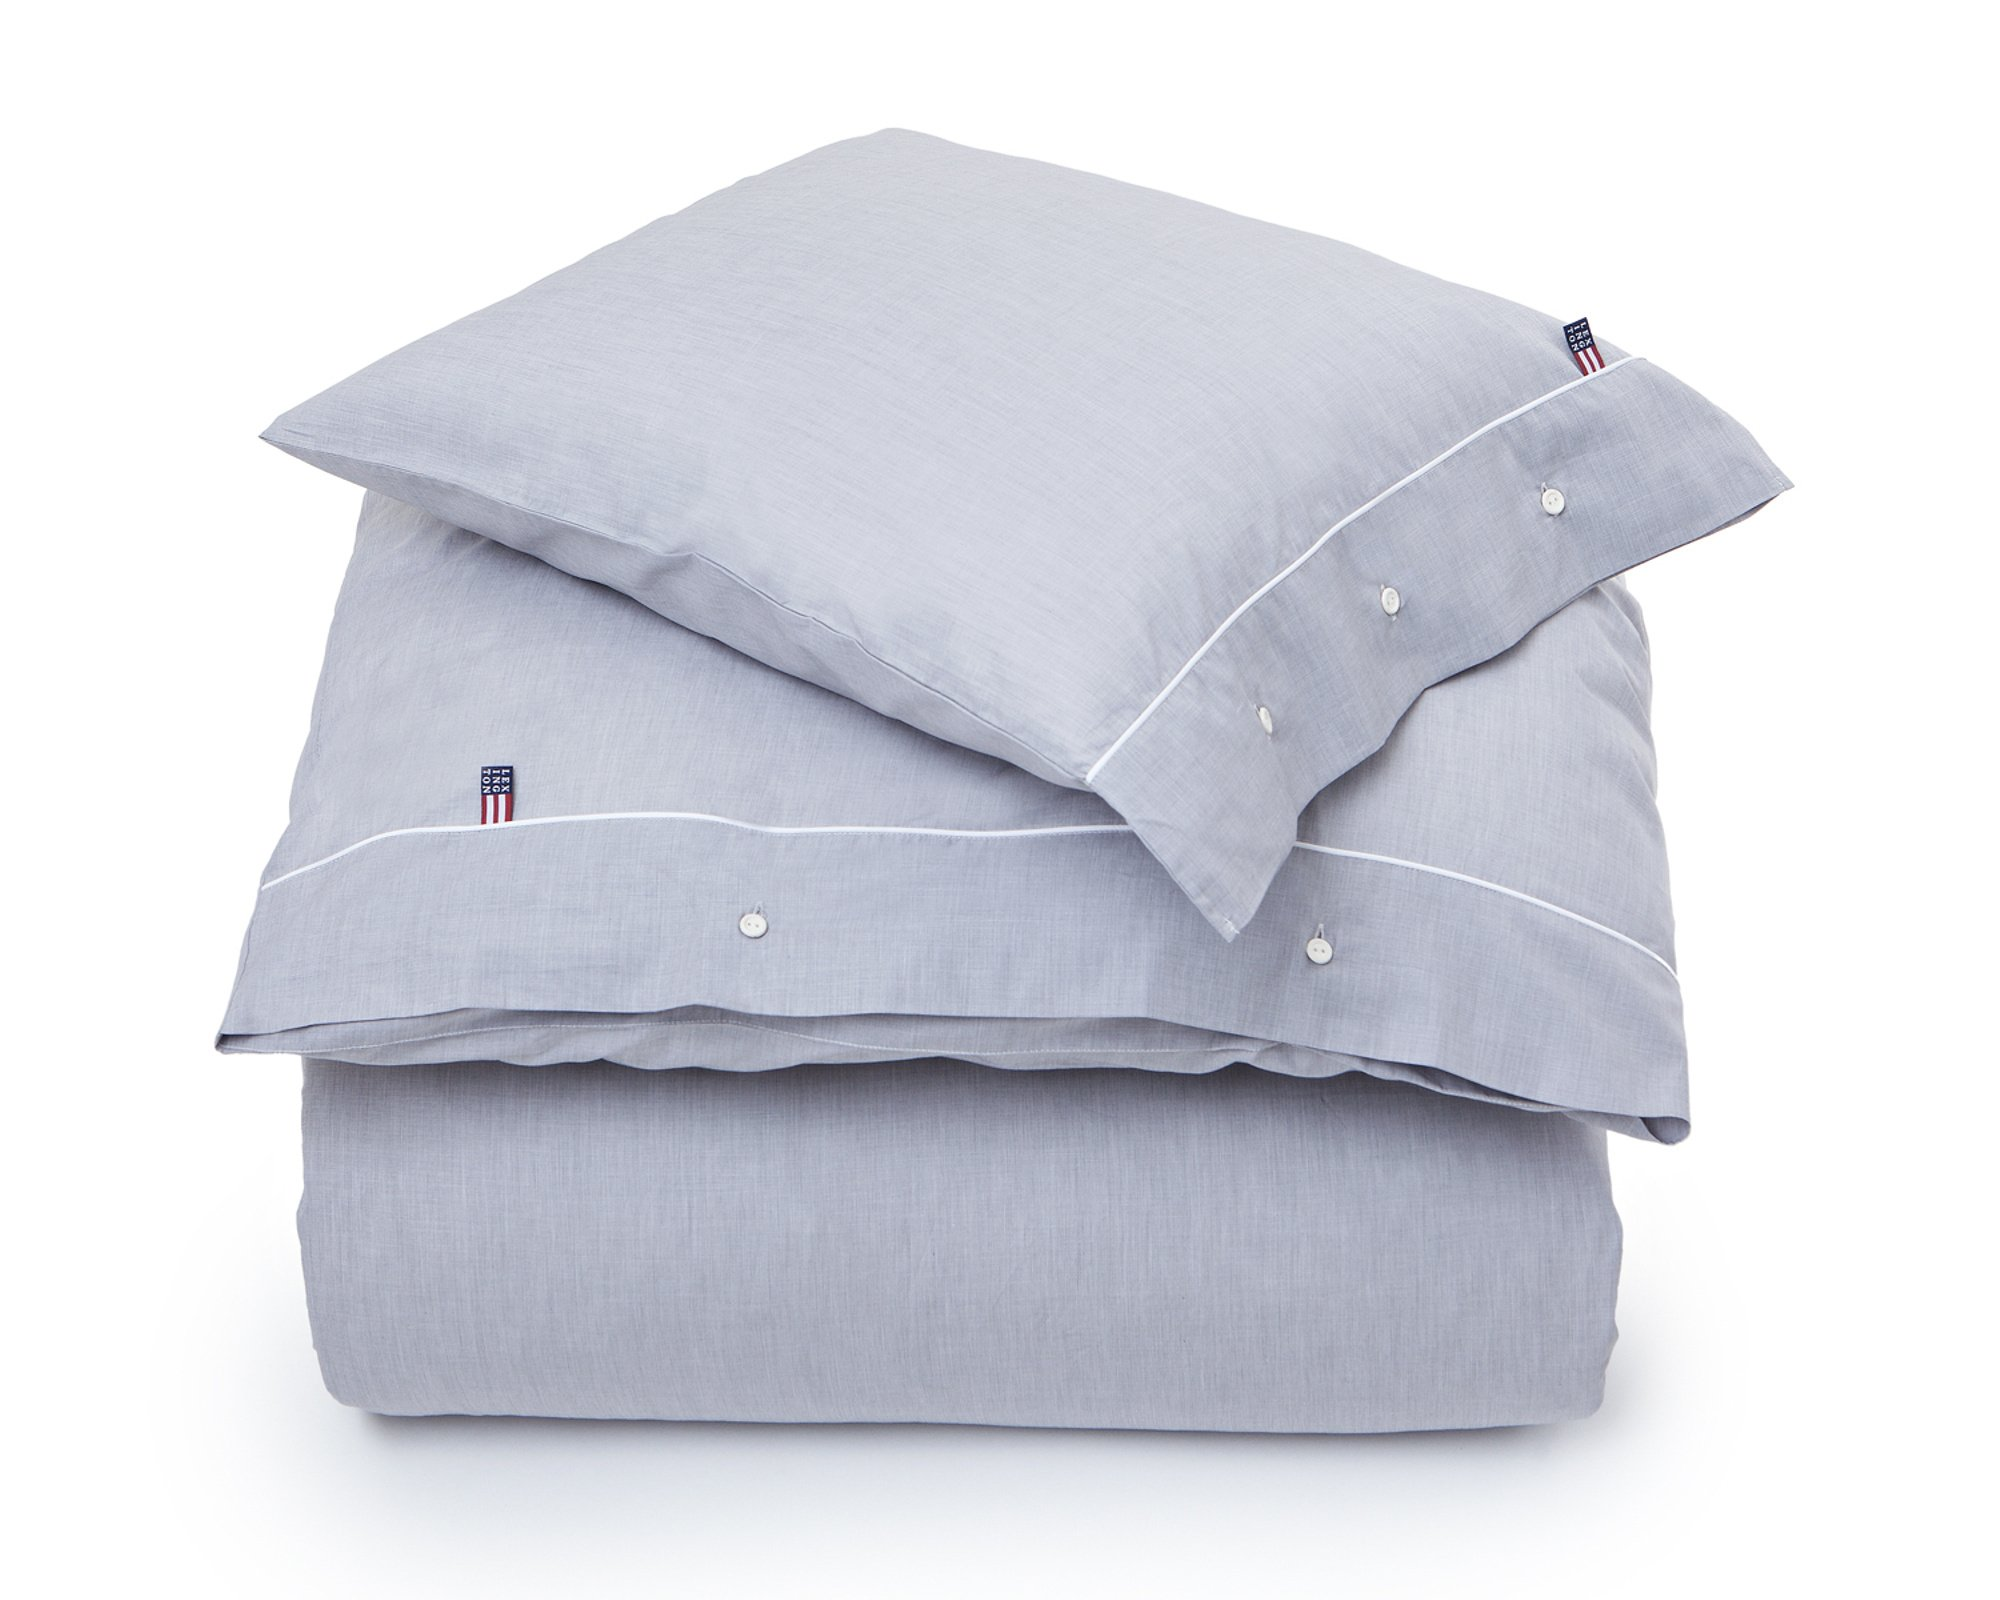 rsp duvet chambray johnlewis lewis cover online grey buyjohn coastal single main com set at pdp john